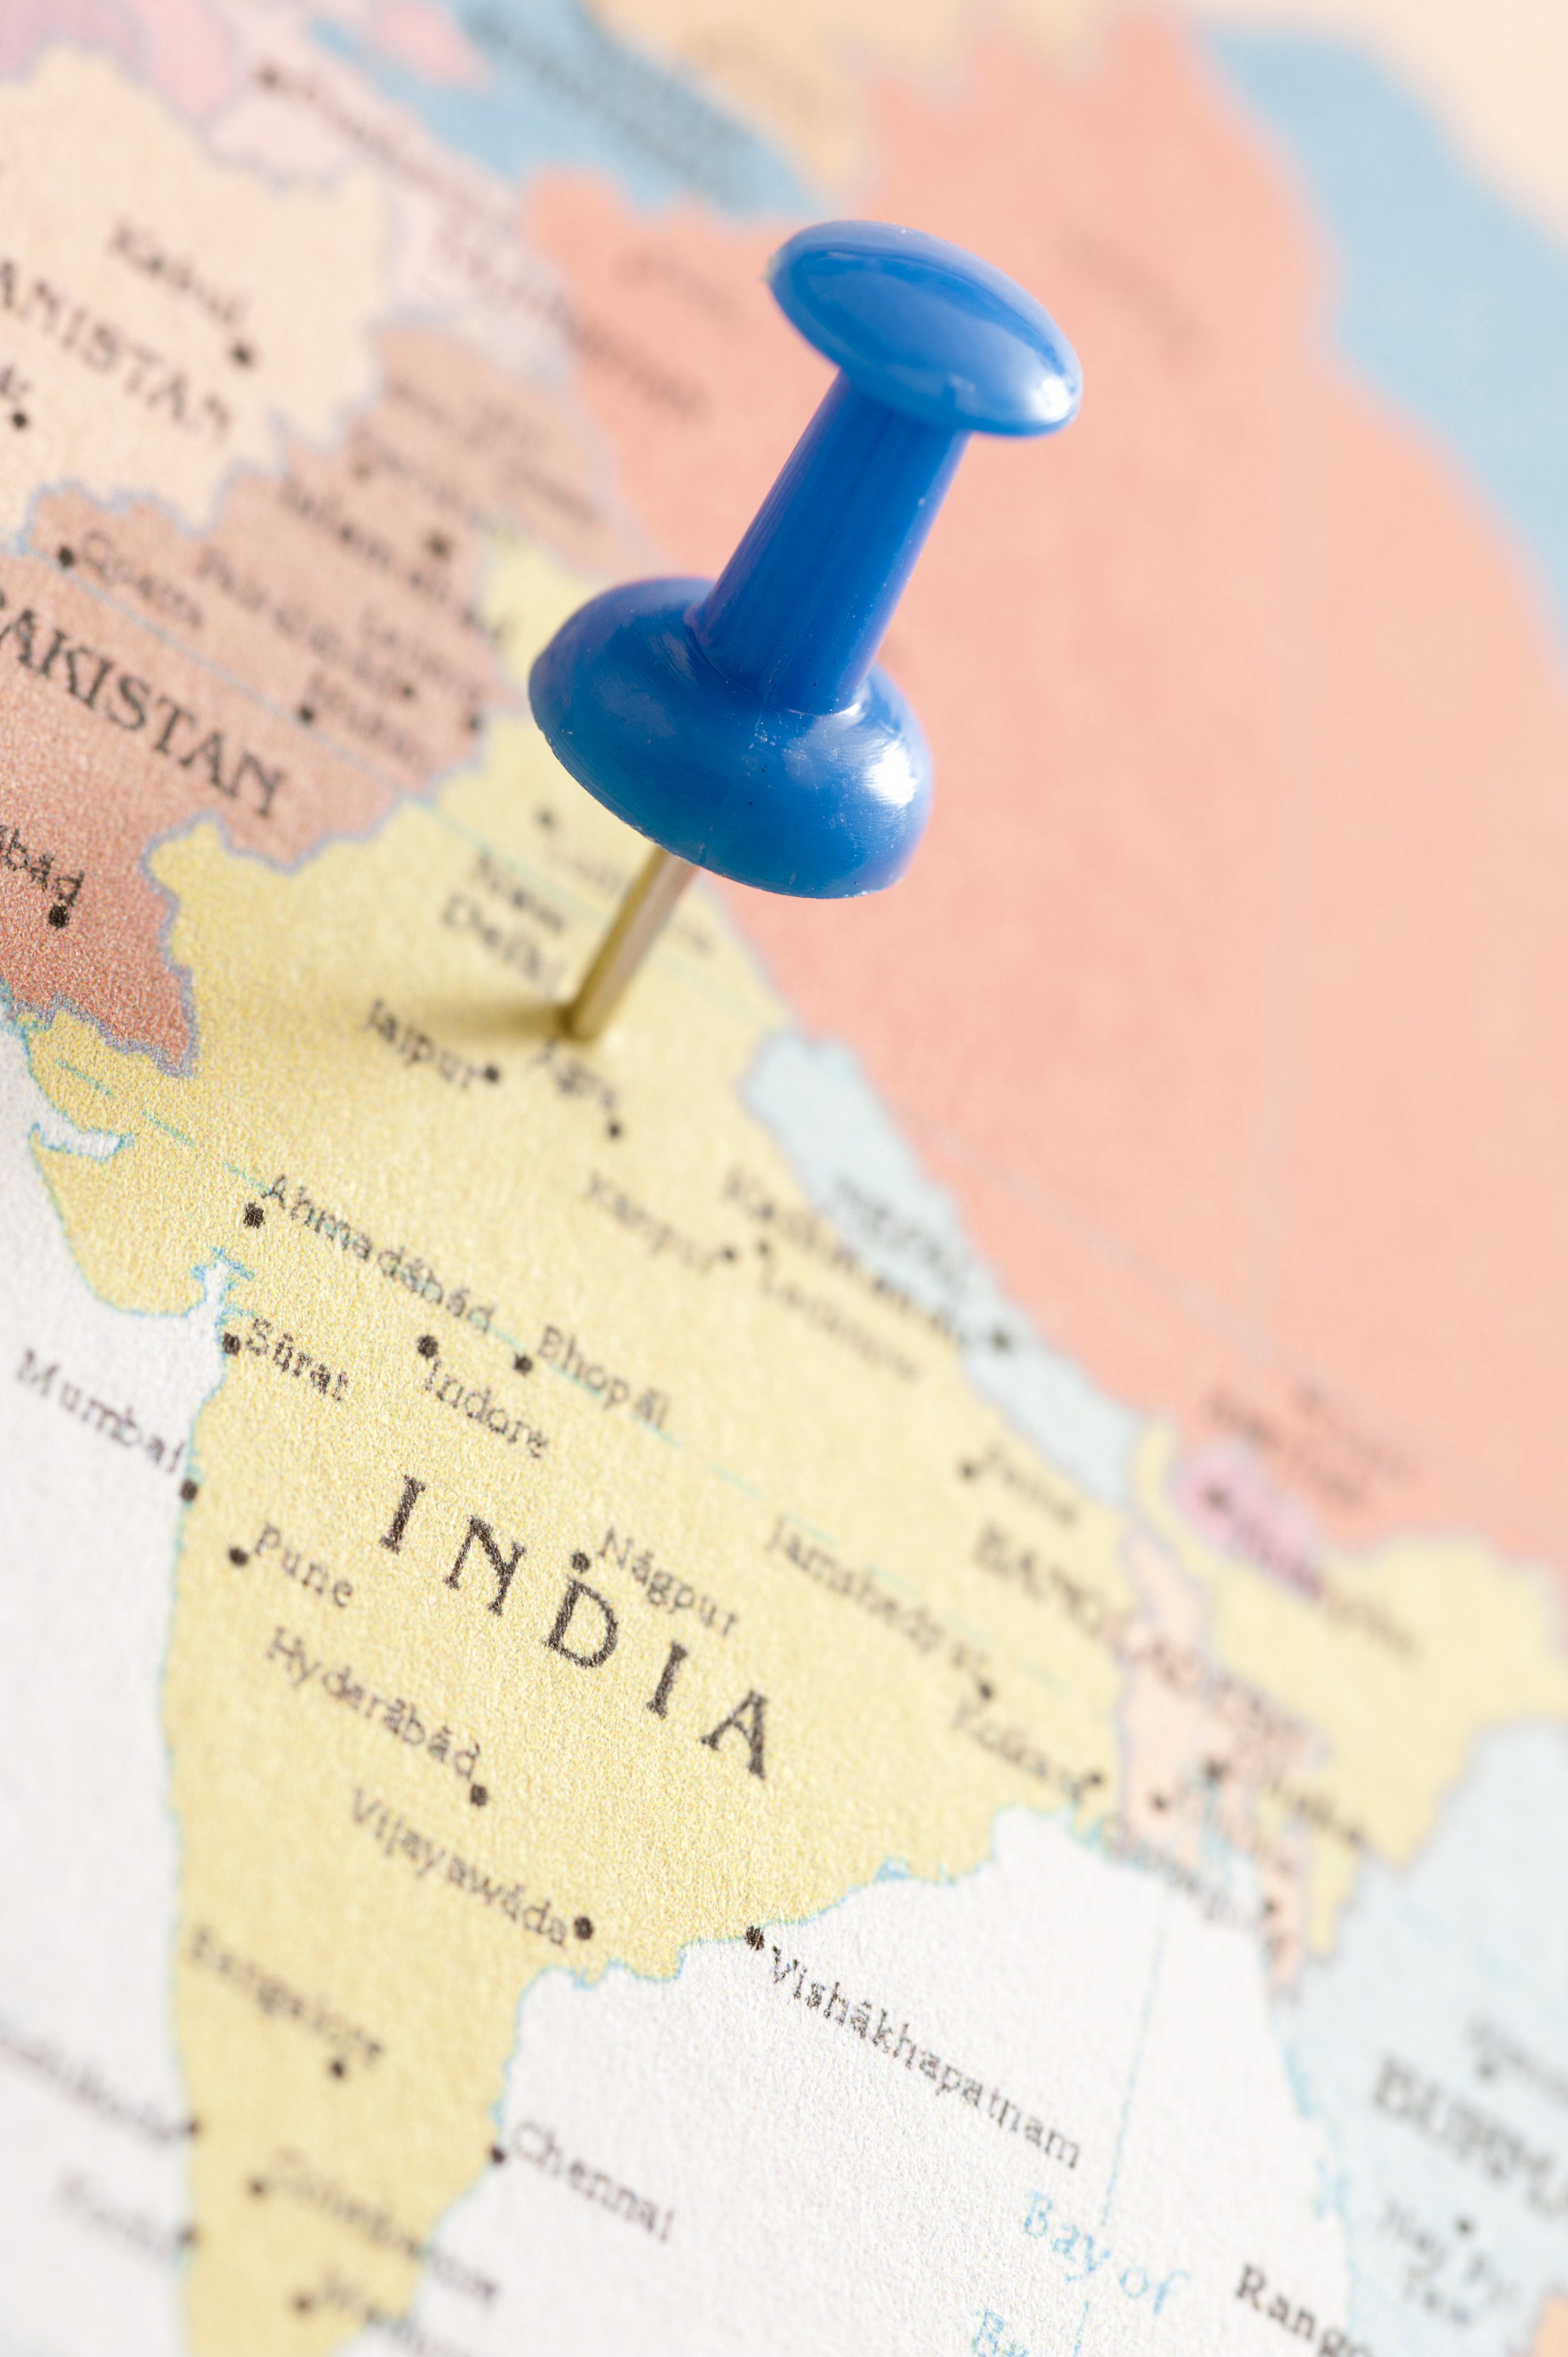 Close Up of Blue Thumb Tack Pinned into Map of India Marking Location of New Delhi